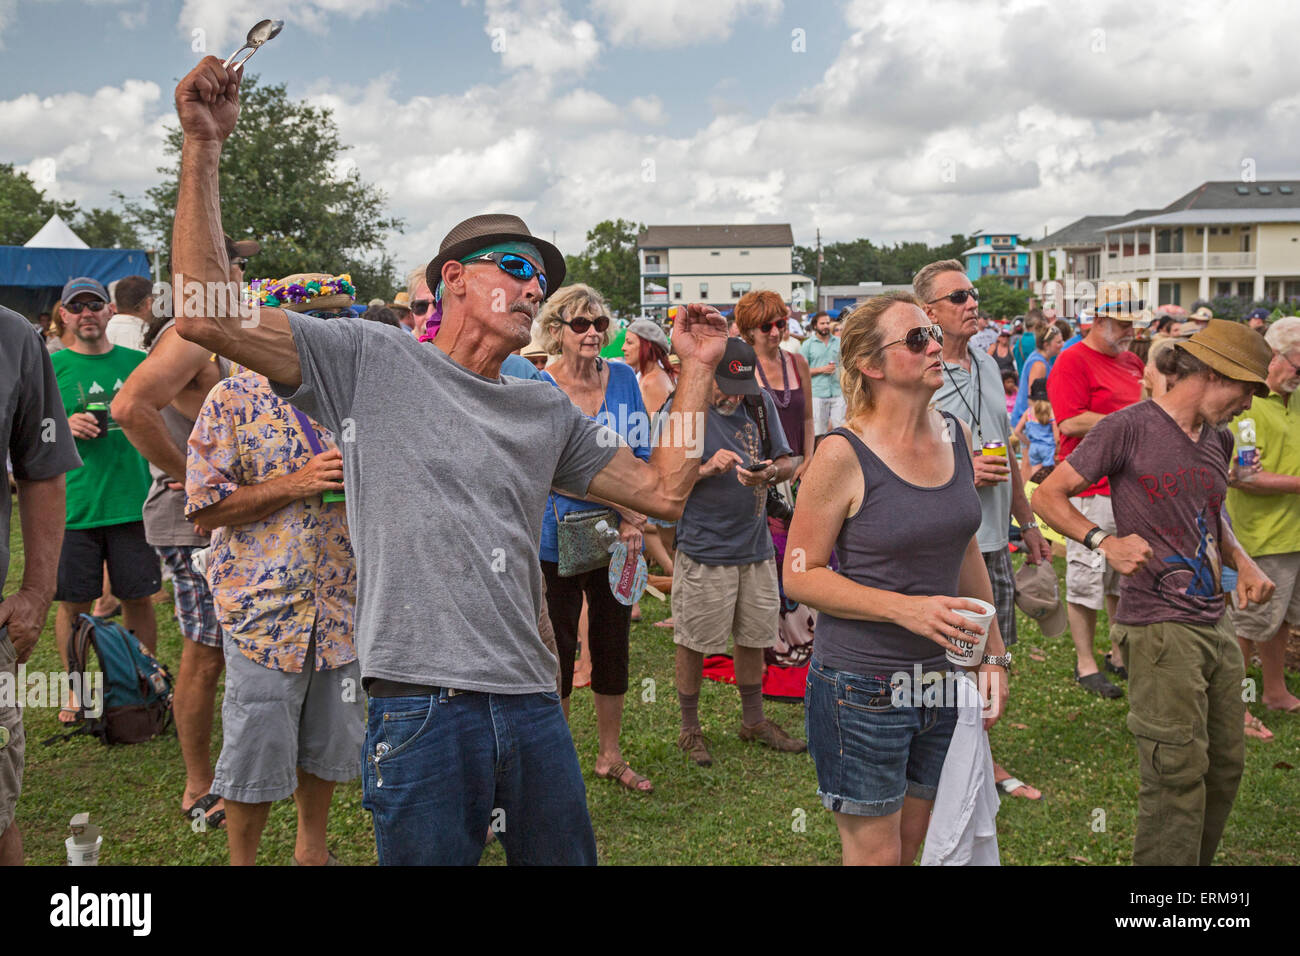 New Orleans, Louisiana - People dance and listen to music during the Mid-City Bayou Bougaloo. - Stock Image